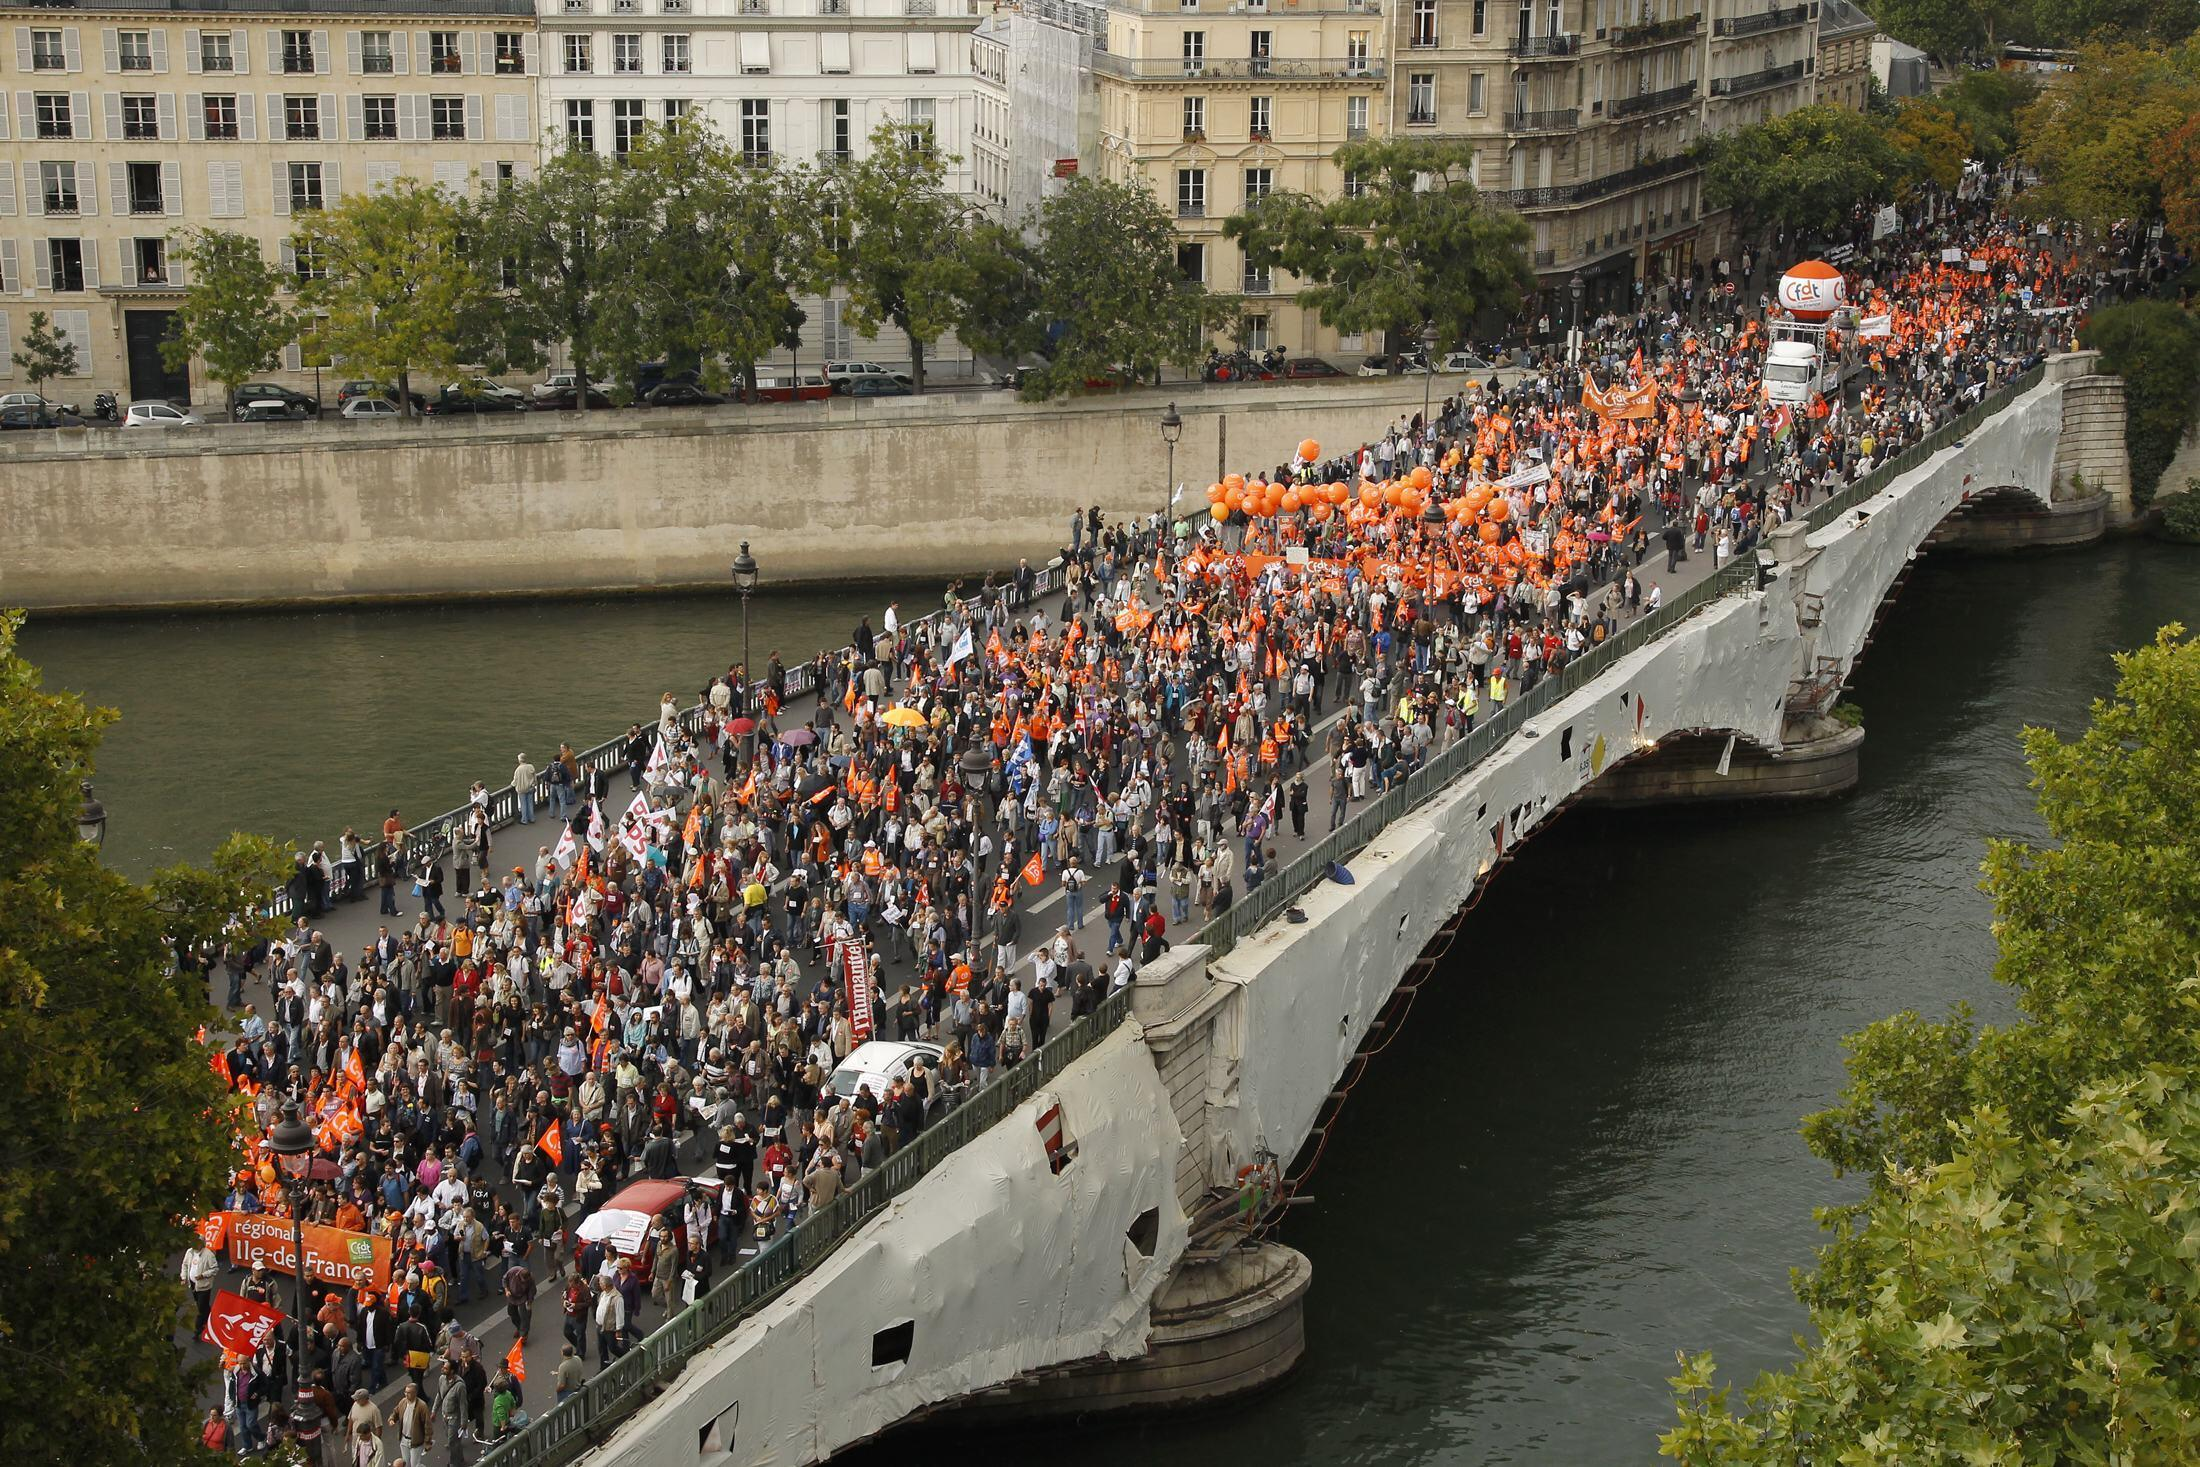 Public and private sector workers march on the Pont de Sully bridge in Paris, 23 September 2010.